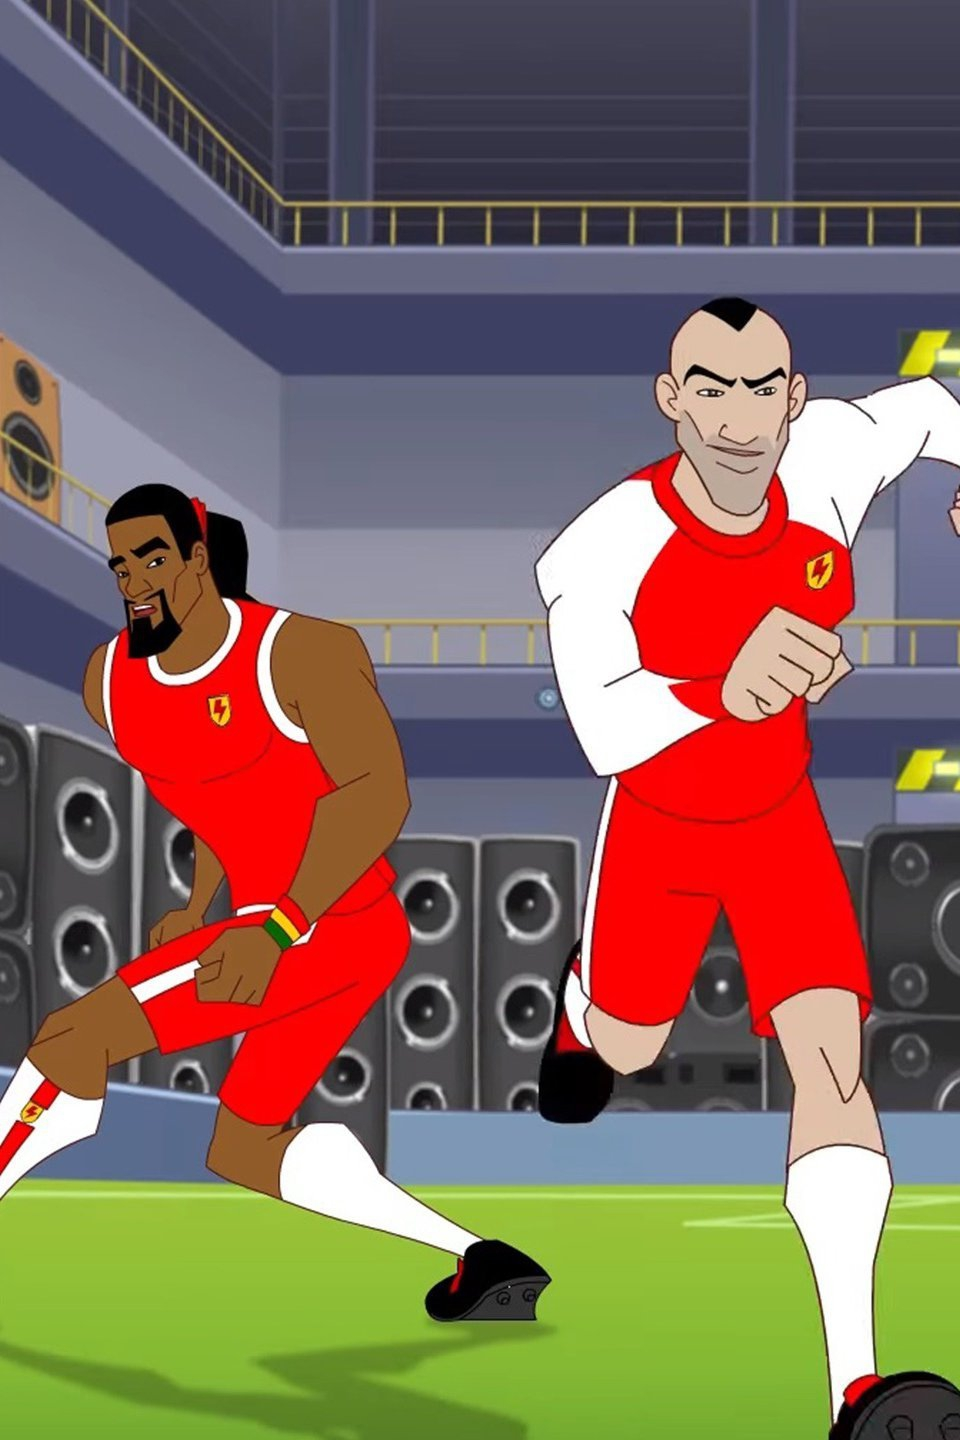 Watch Supa Strikas - S4:E12 12th Man (2016) Online for ...